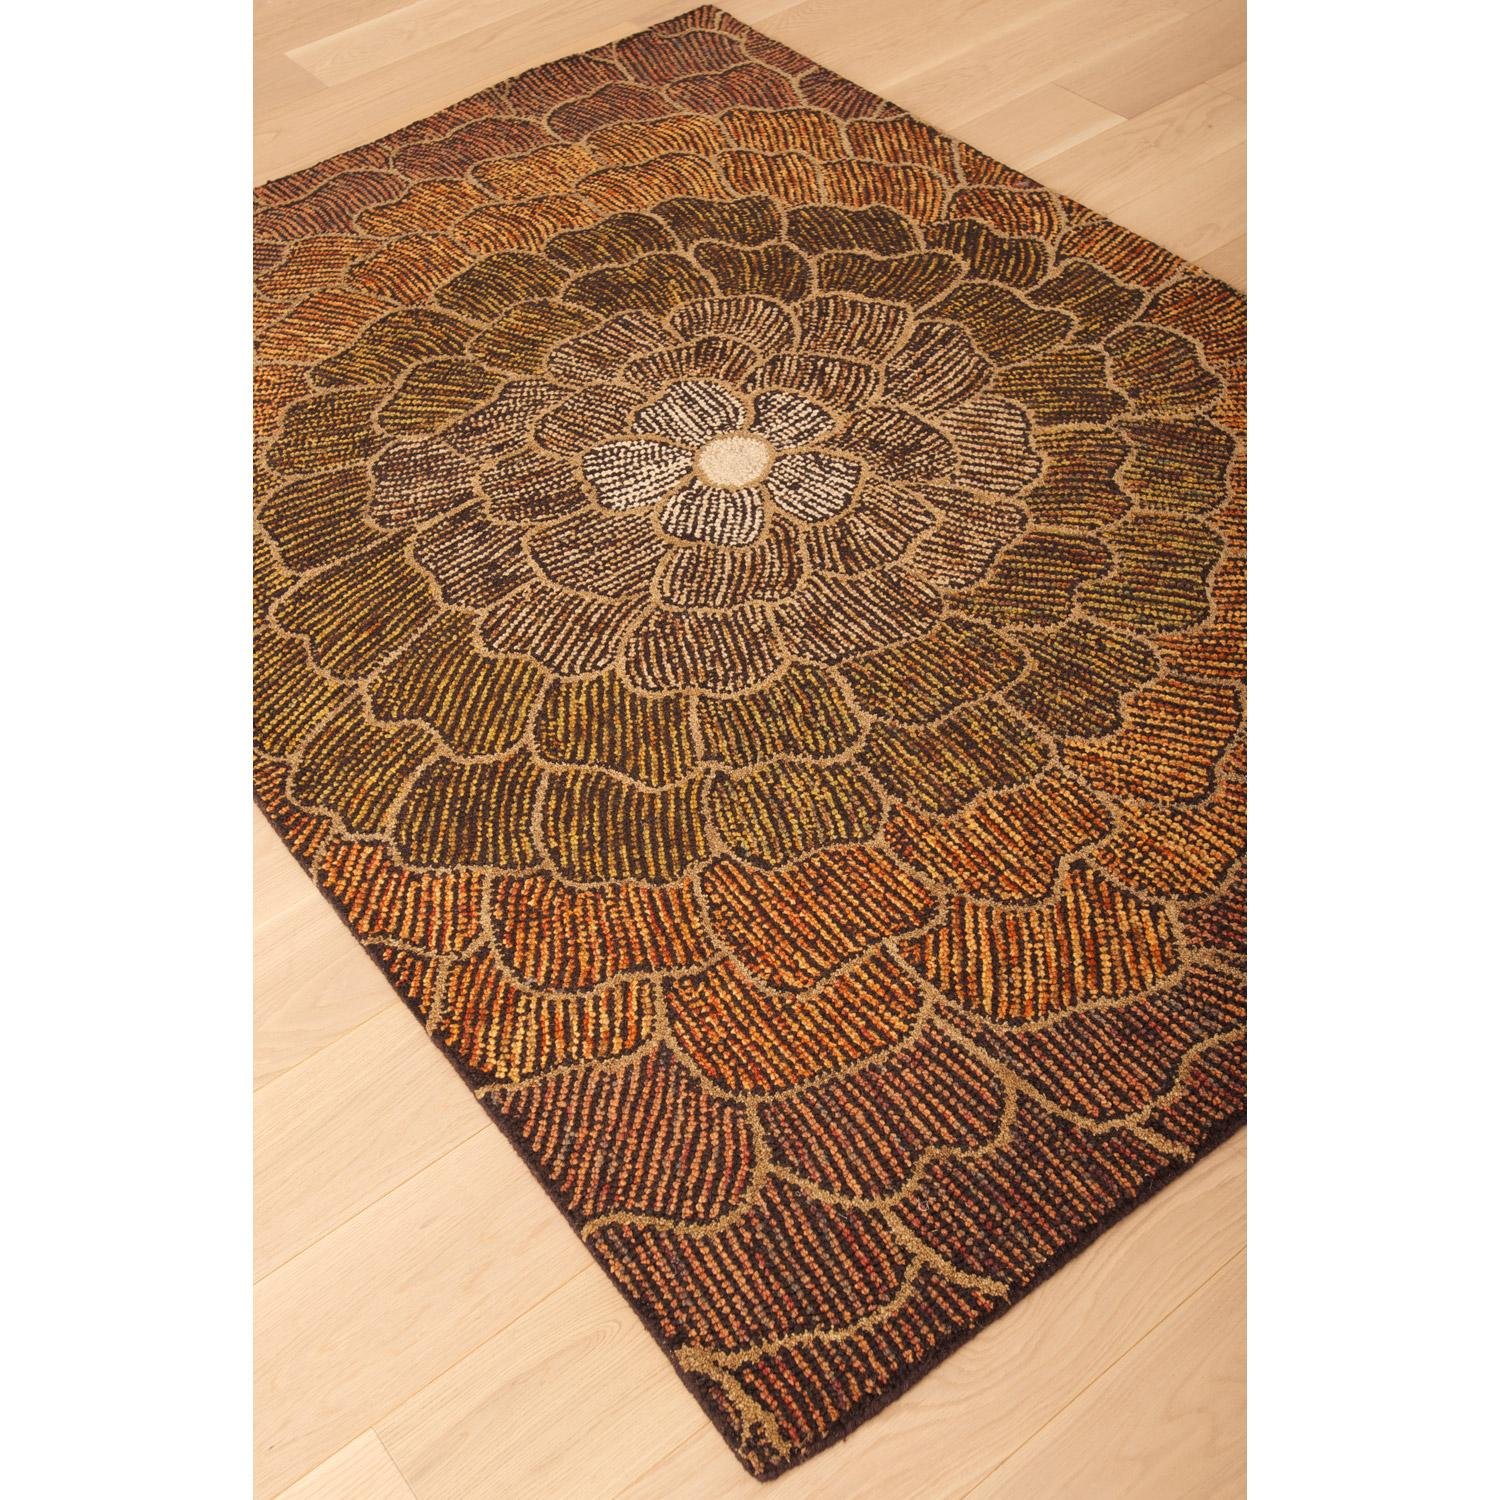 Lifestyle Camilla Rug - Hand Tufted, Wool - ABA-9798